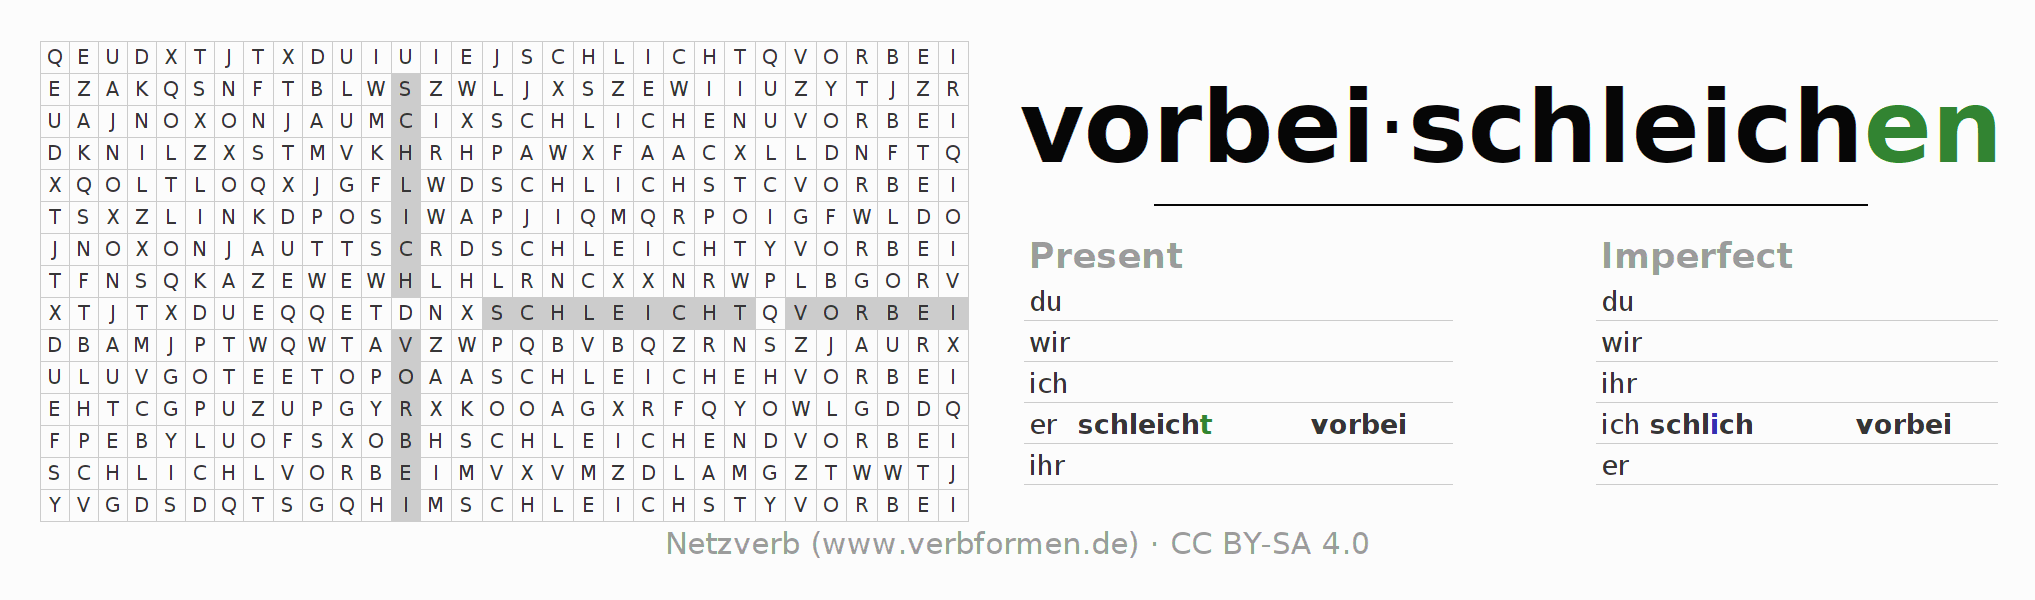 Word search puzzle for the conjugation of the verb vorbeischleichen (hat)